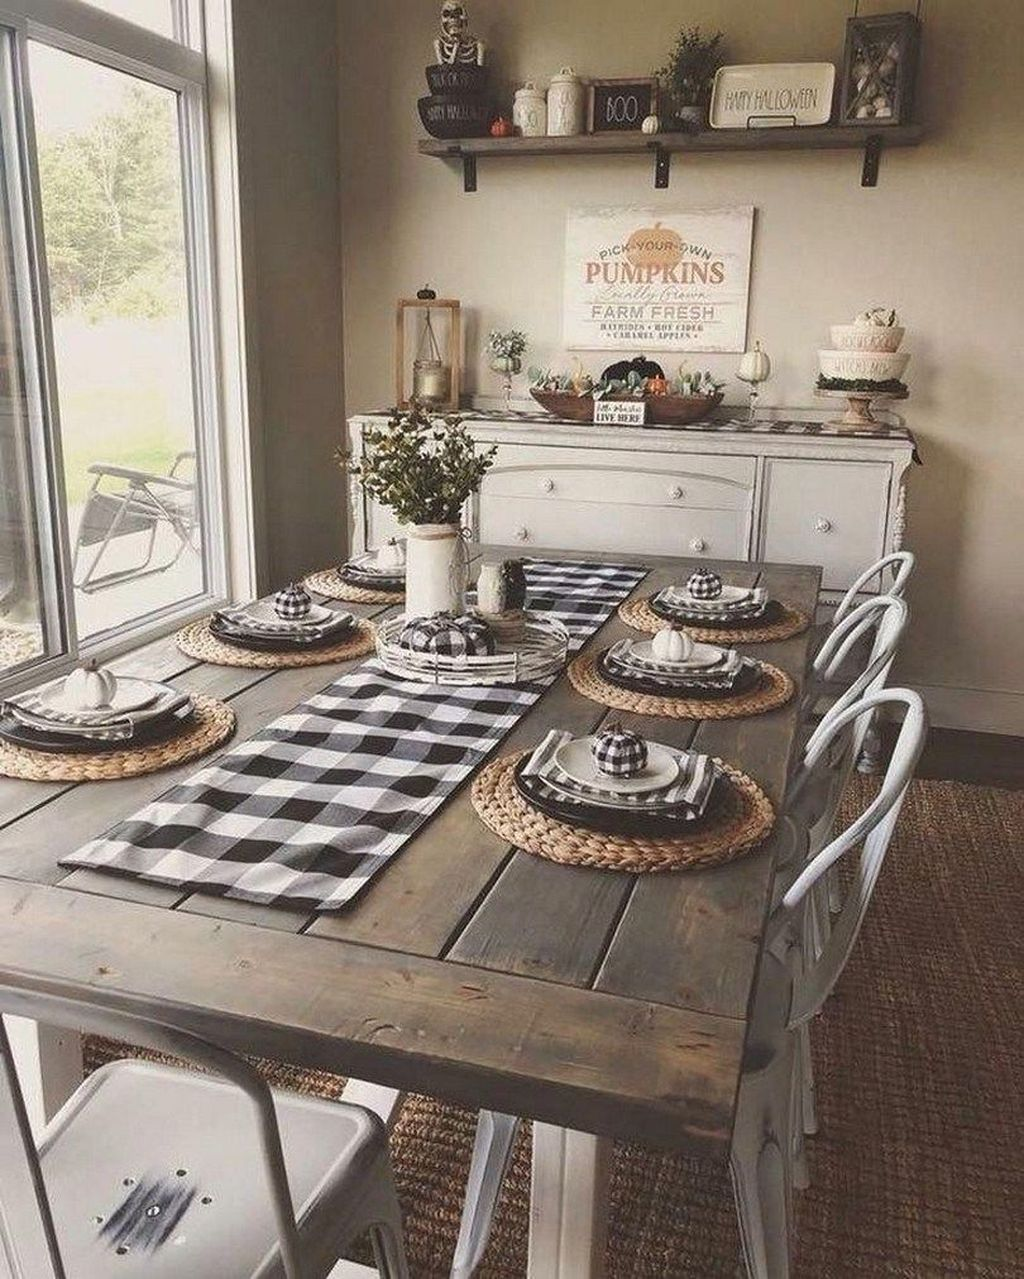 Inspiring DIY Farmhouse Home Decor Ideas 16